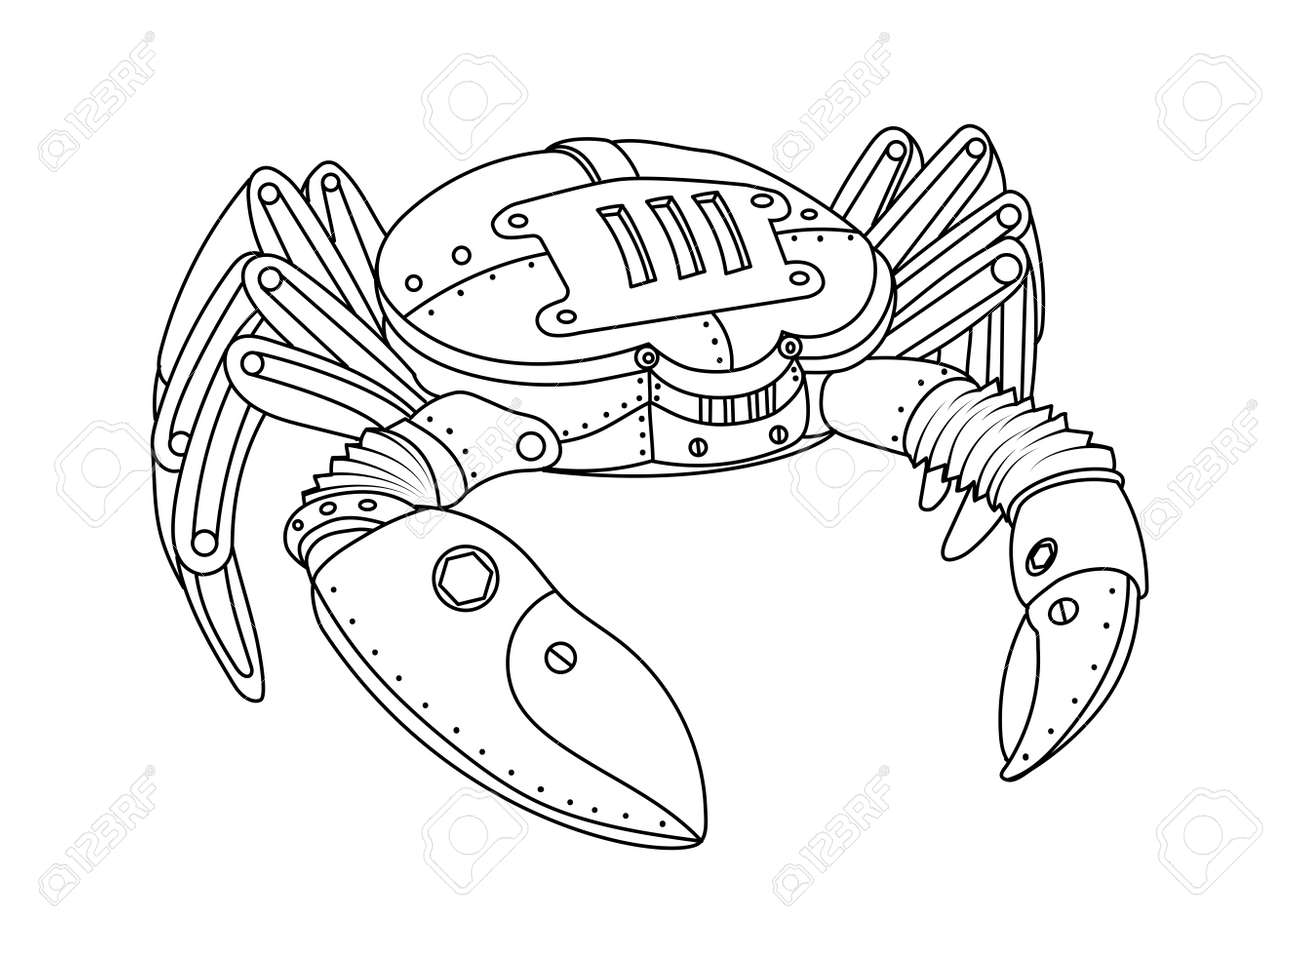 ste unk style crab mechanical animal coloring book for adult  ste unk style crab mechanical animal coloring book for adult vector illustration stock vector